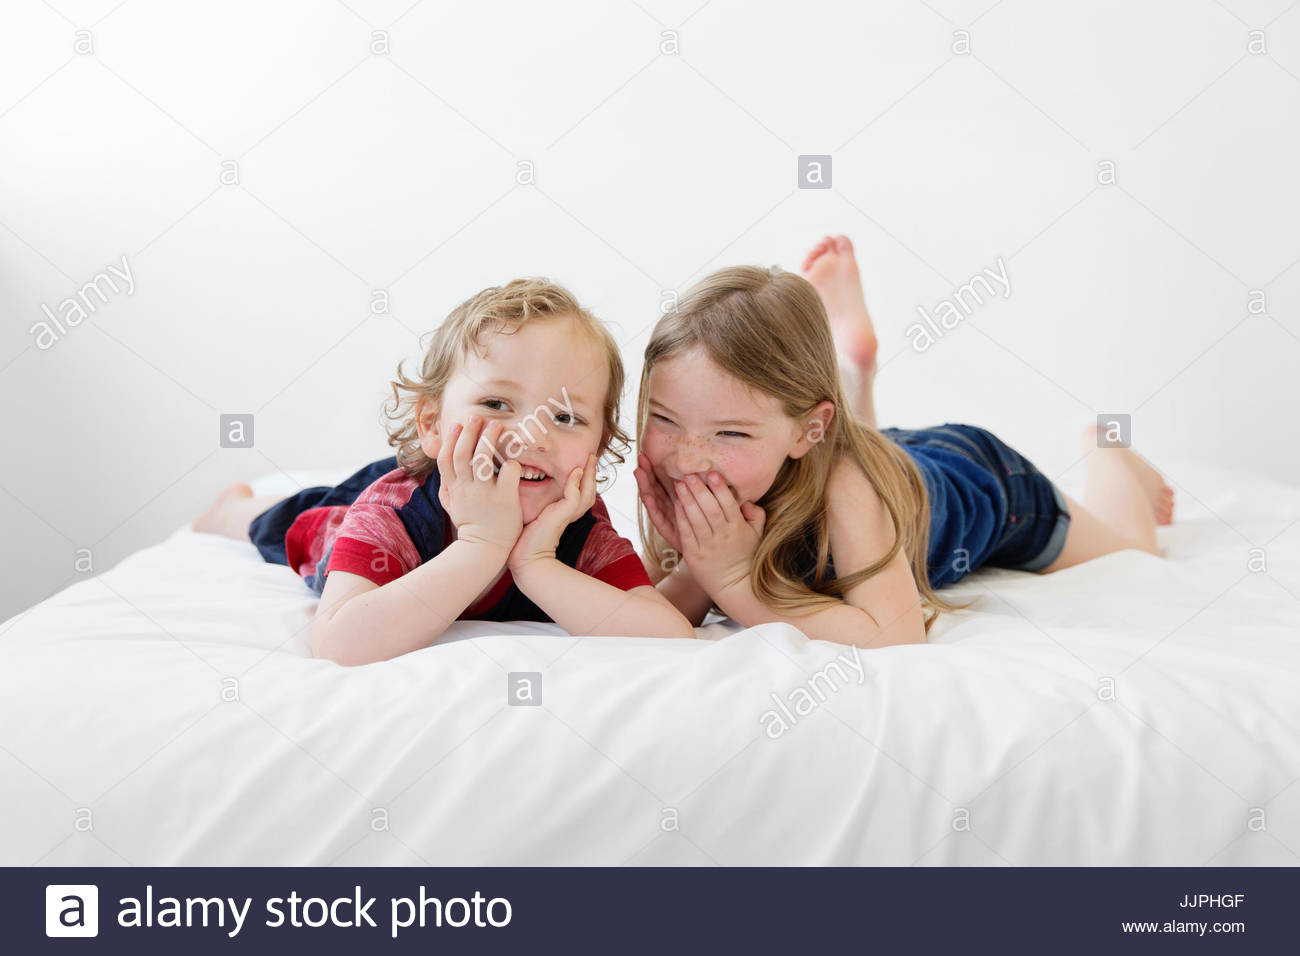 A six year old girl and four year old boy, brother and sister lying on a bed looking at the camera. - Stock Image